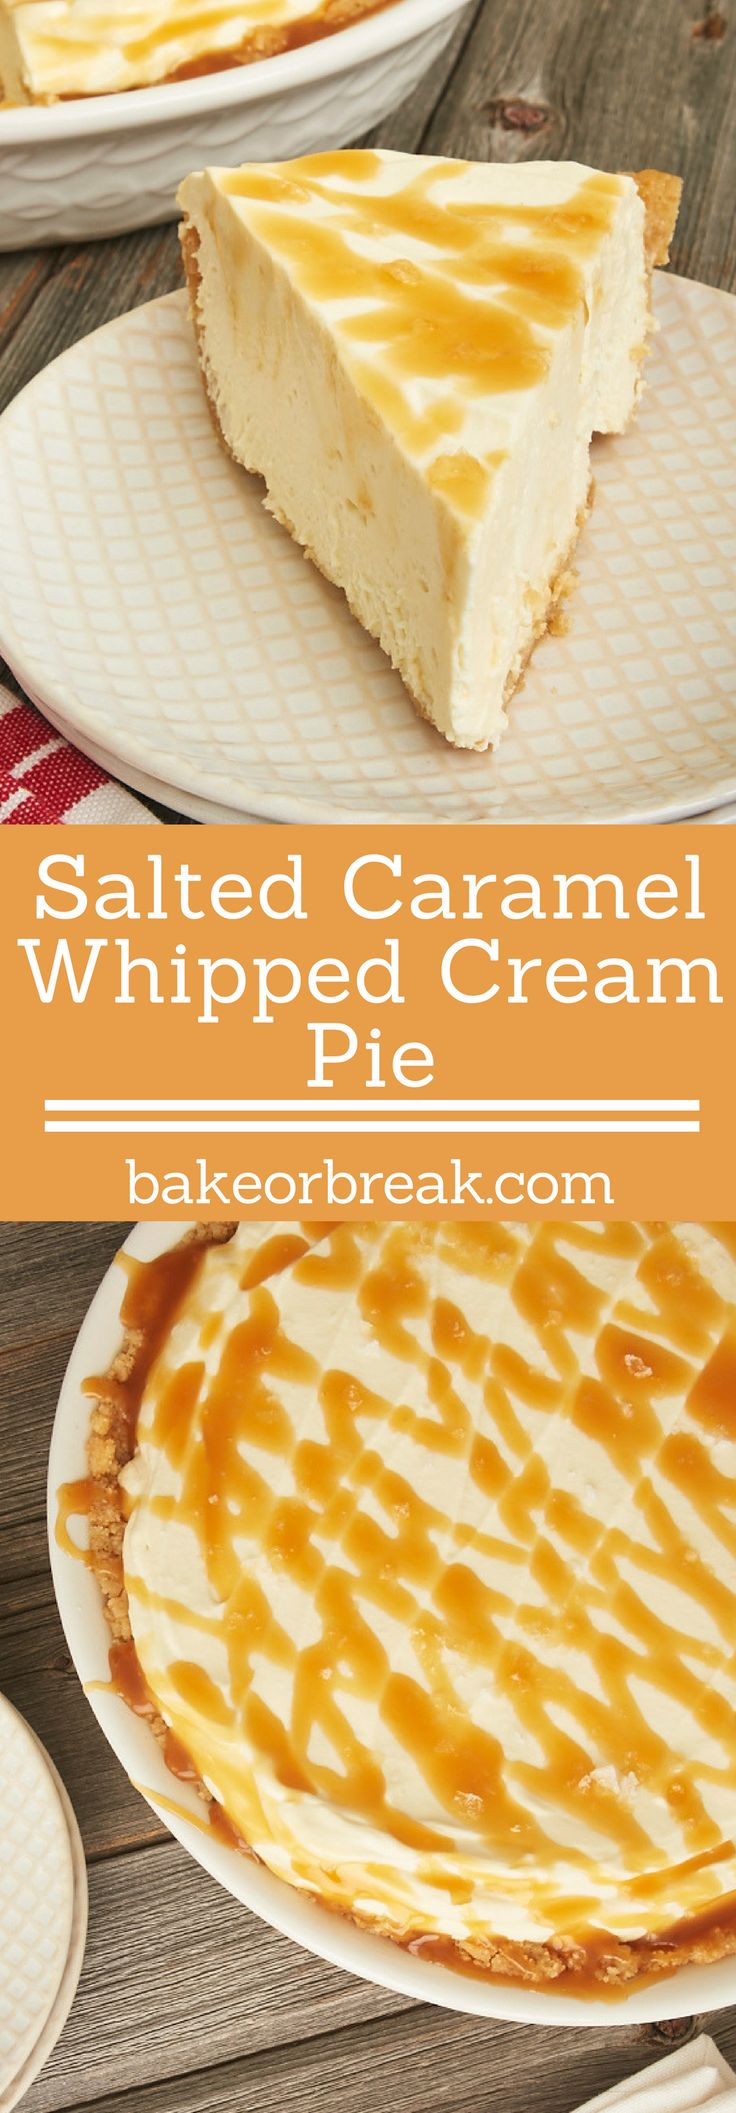 Salted Caramel Whipped Cream Pie is brilliantly simple and delicious. A cookie crust, plenty of sweetened whipped cream, and salty caramel are an irresistible combination! - Bake or Break ~ http://www.bakeorbreak.com